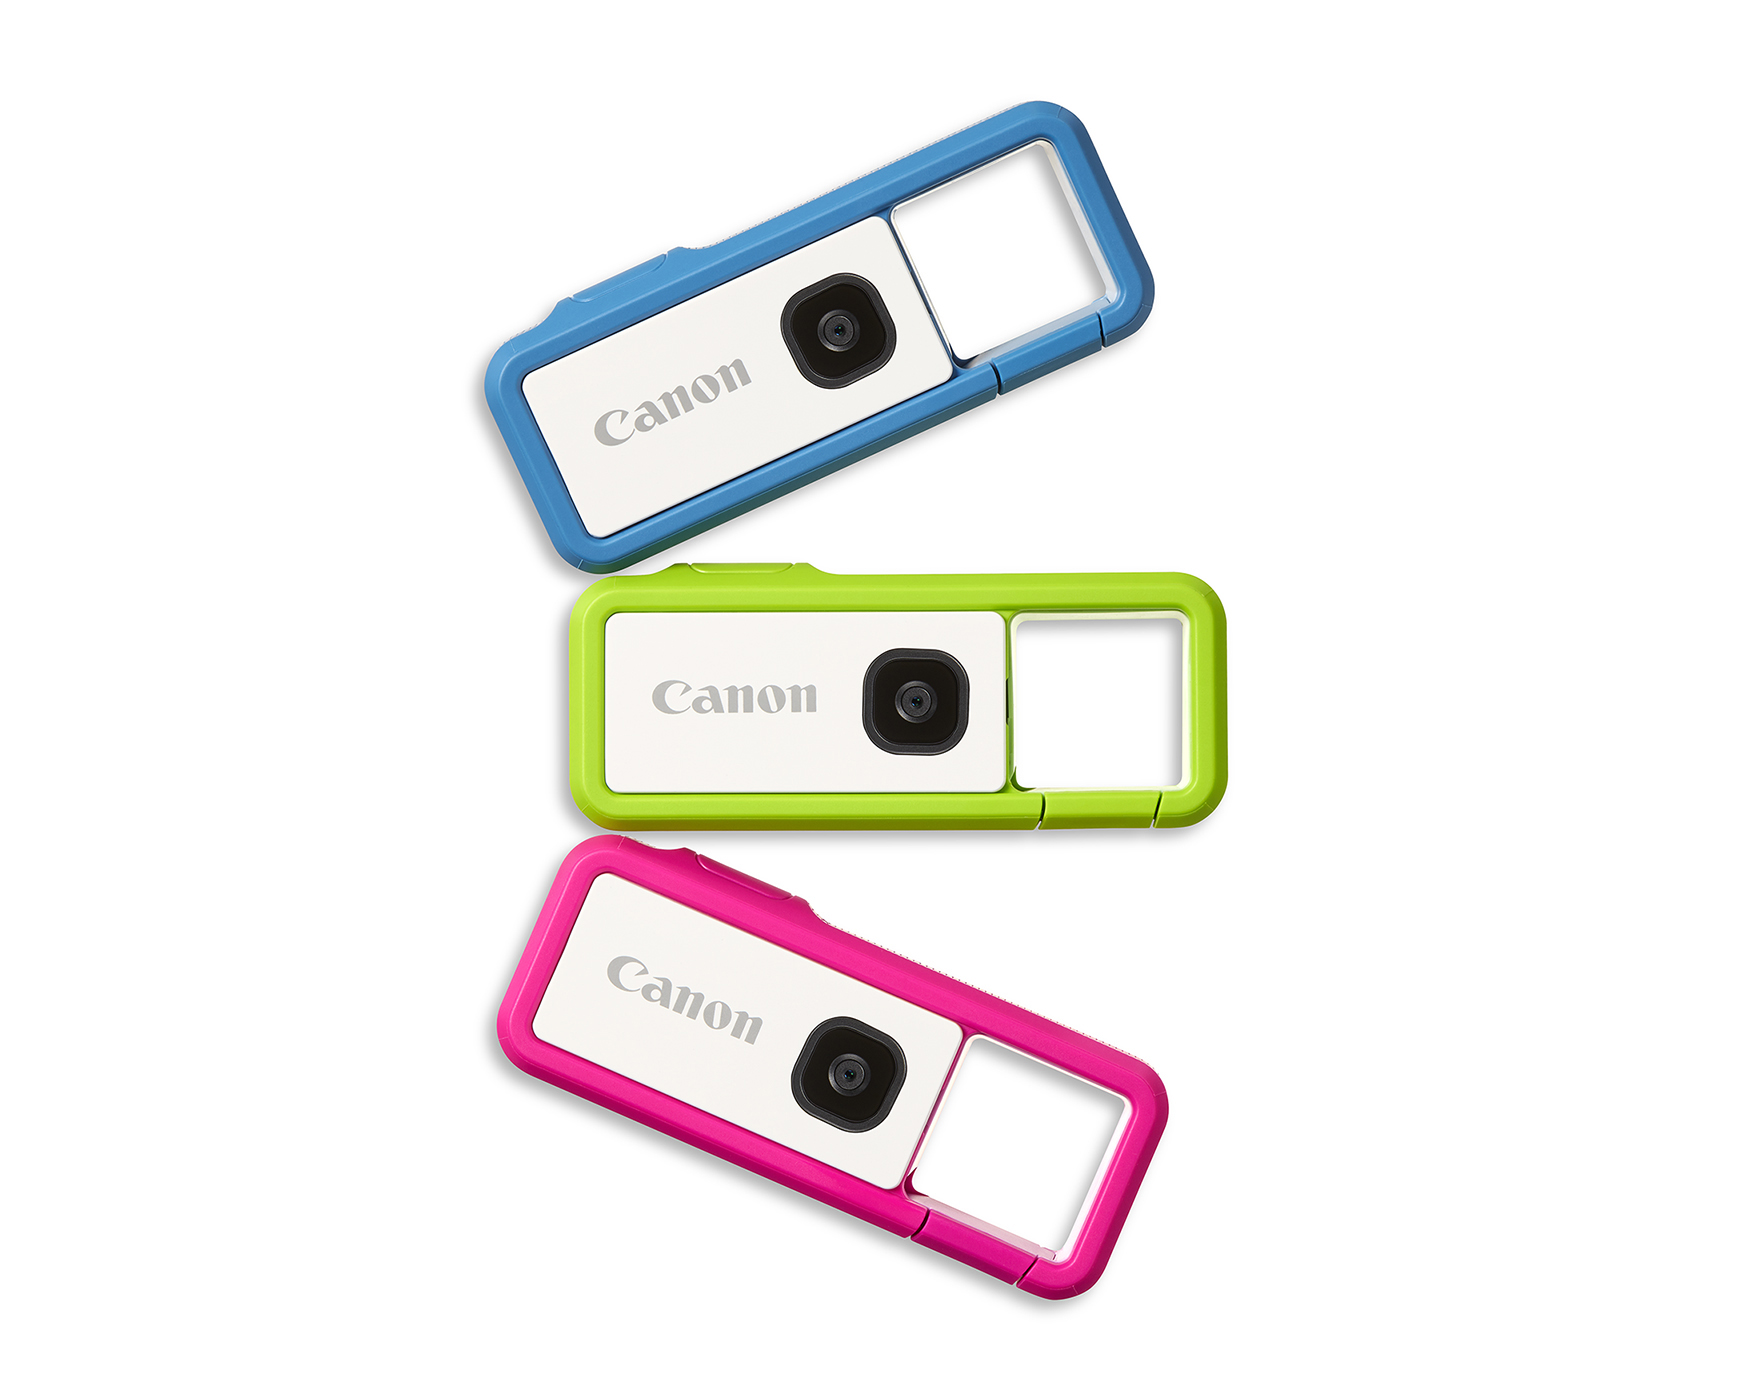 Canon releases tiny outdoor camera built into a carabiner